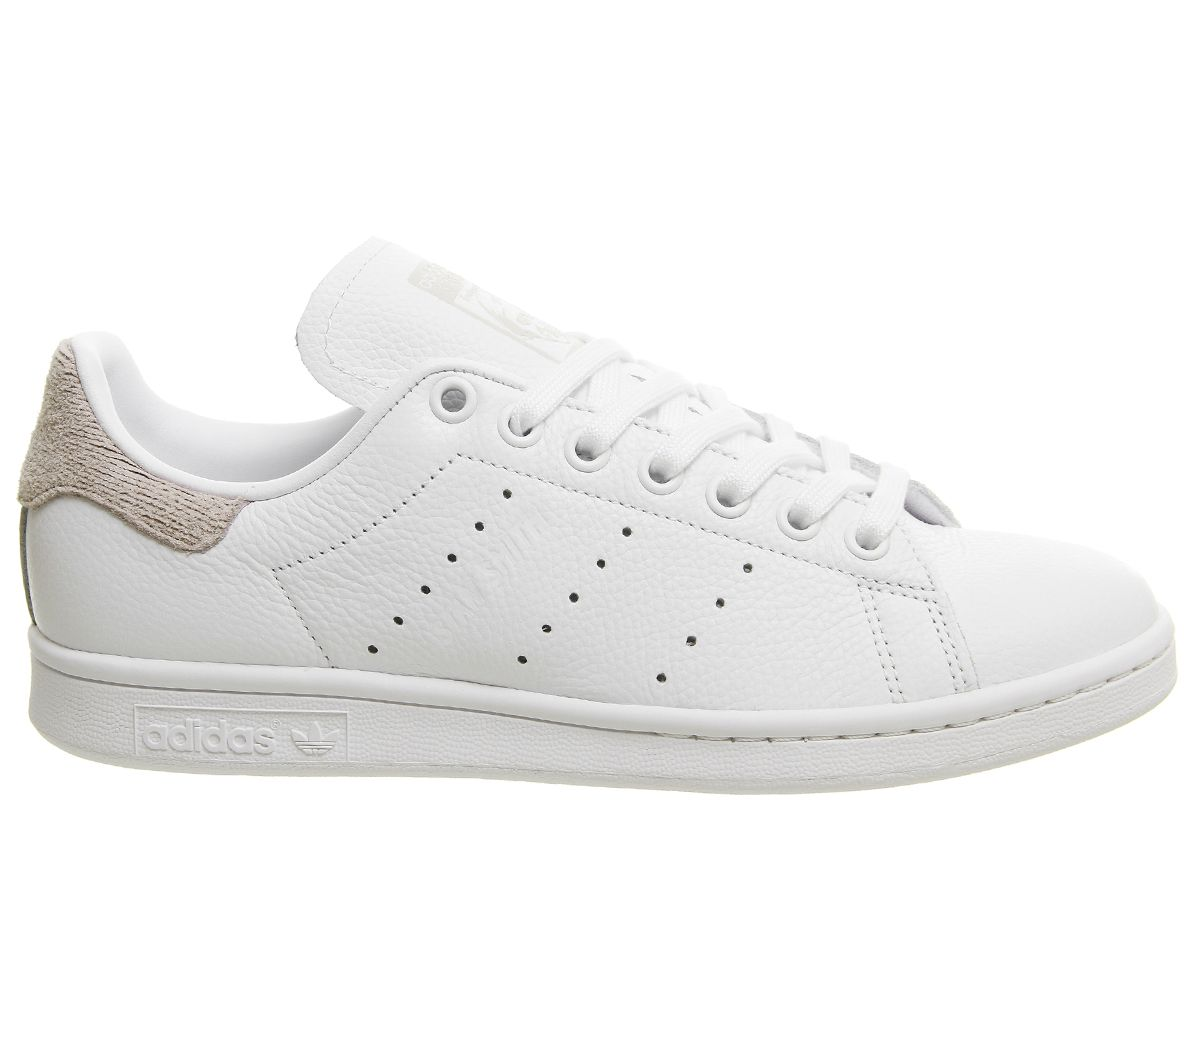 Détails sur Femmes adidas Stan Smith Baskets Blanc Orchidée Tinte Baskets